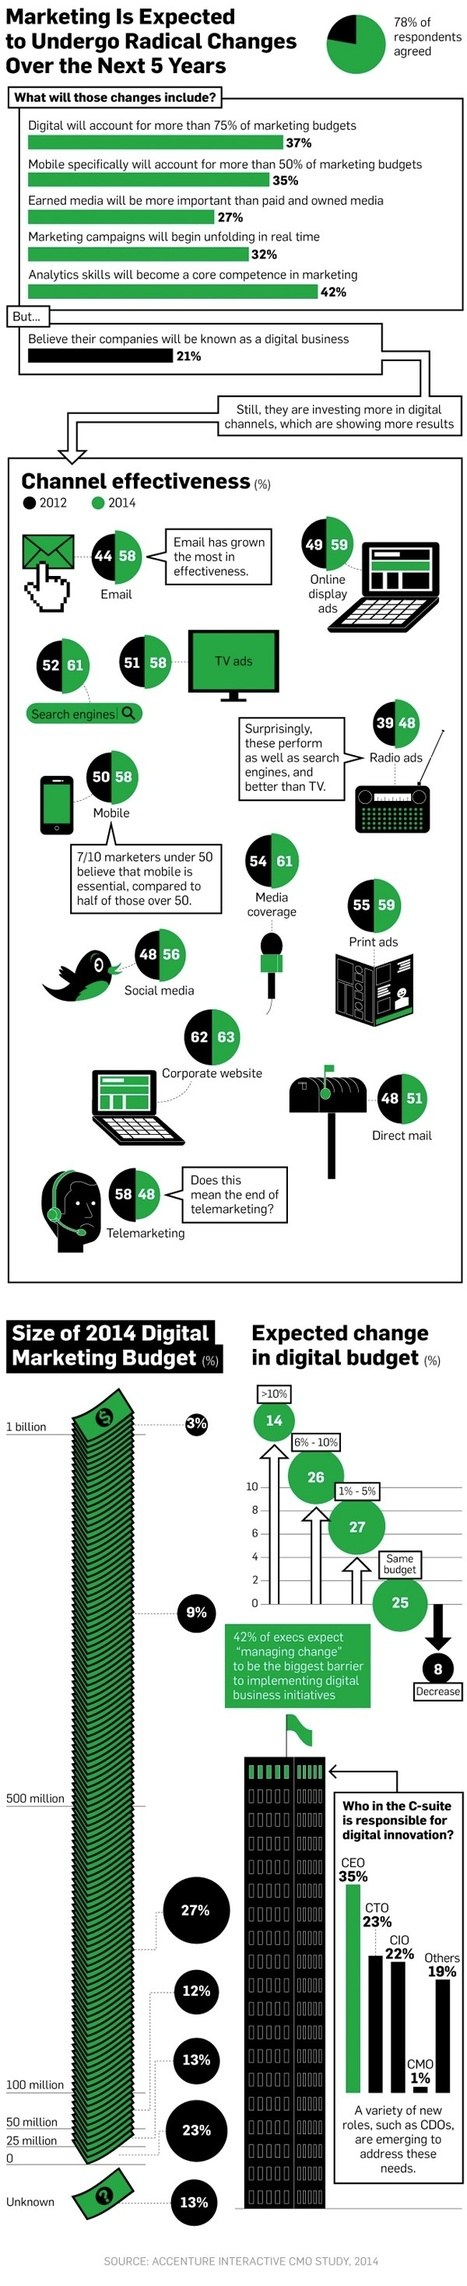 Digital to Grow to 75% of Marketing Budgets [Infographic] | digital marketing strategy | Scoop.it